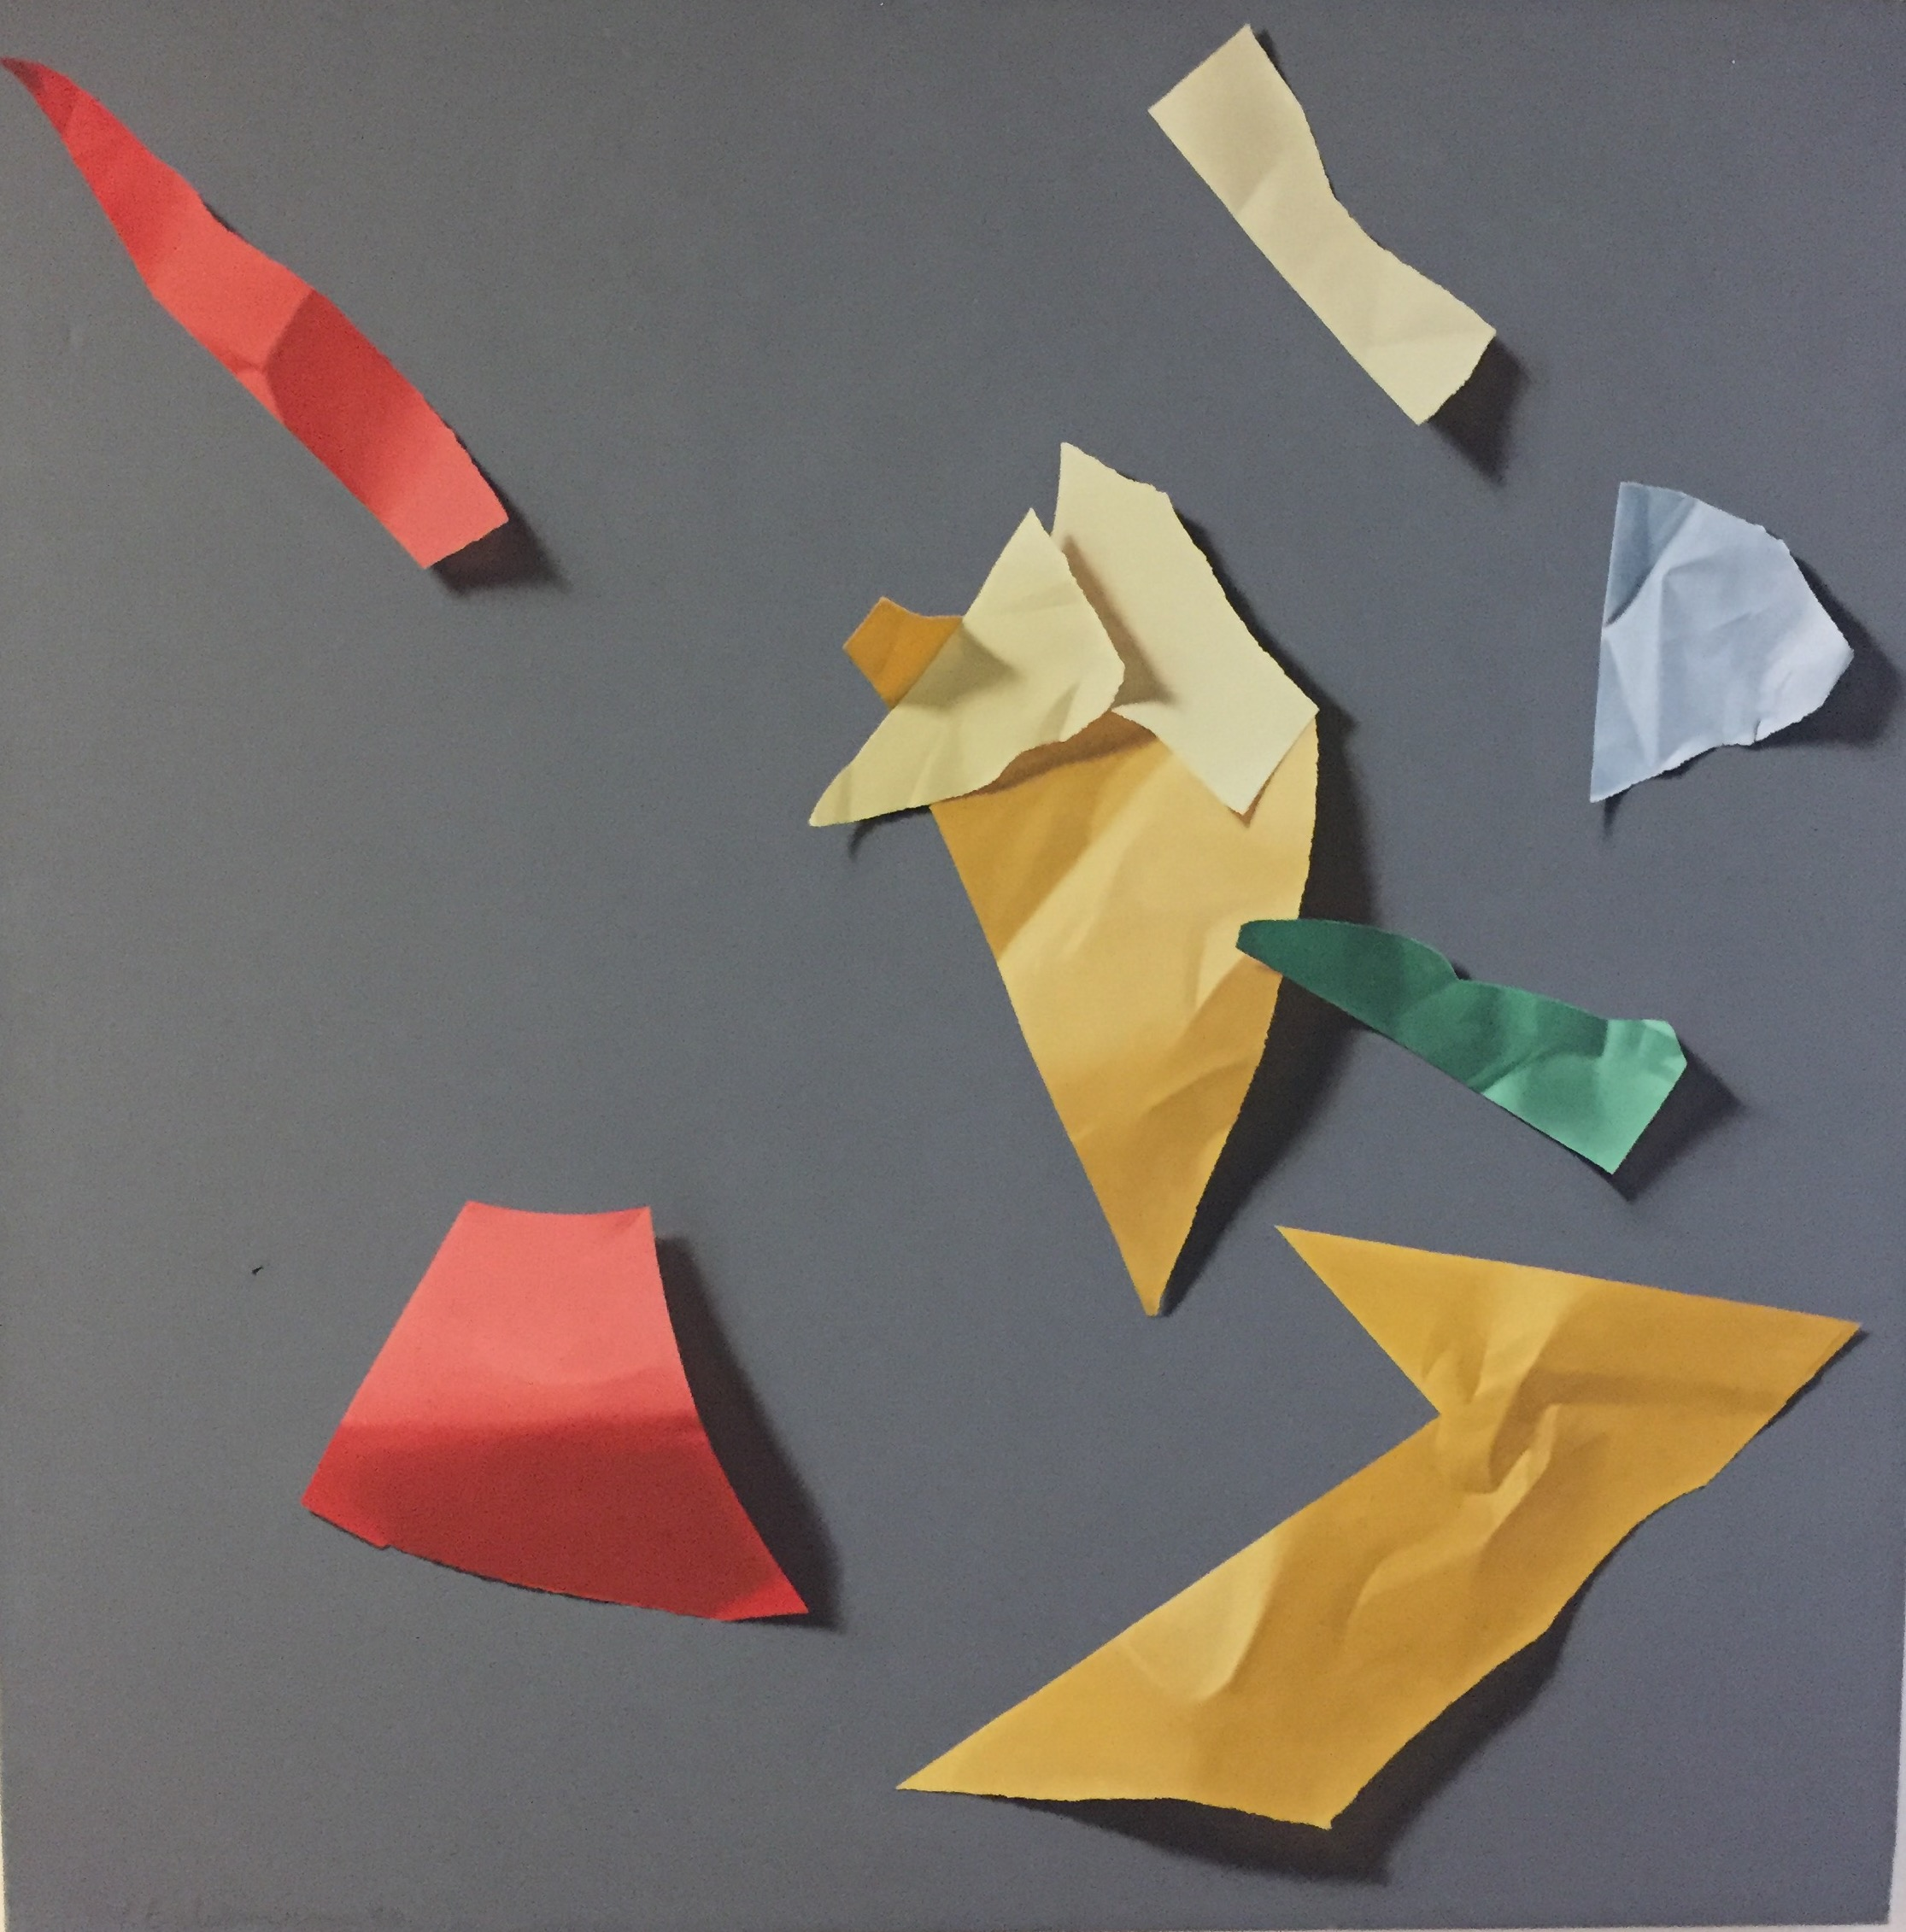 Untitled, 1983, oil on canvas, 39 1/2 x 39 1/2 x 1 1/2""